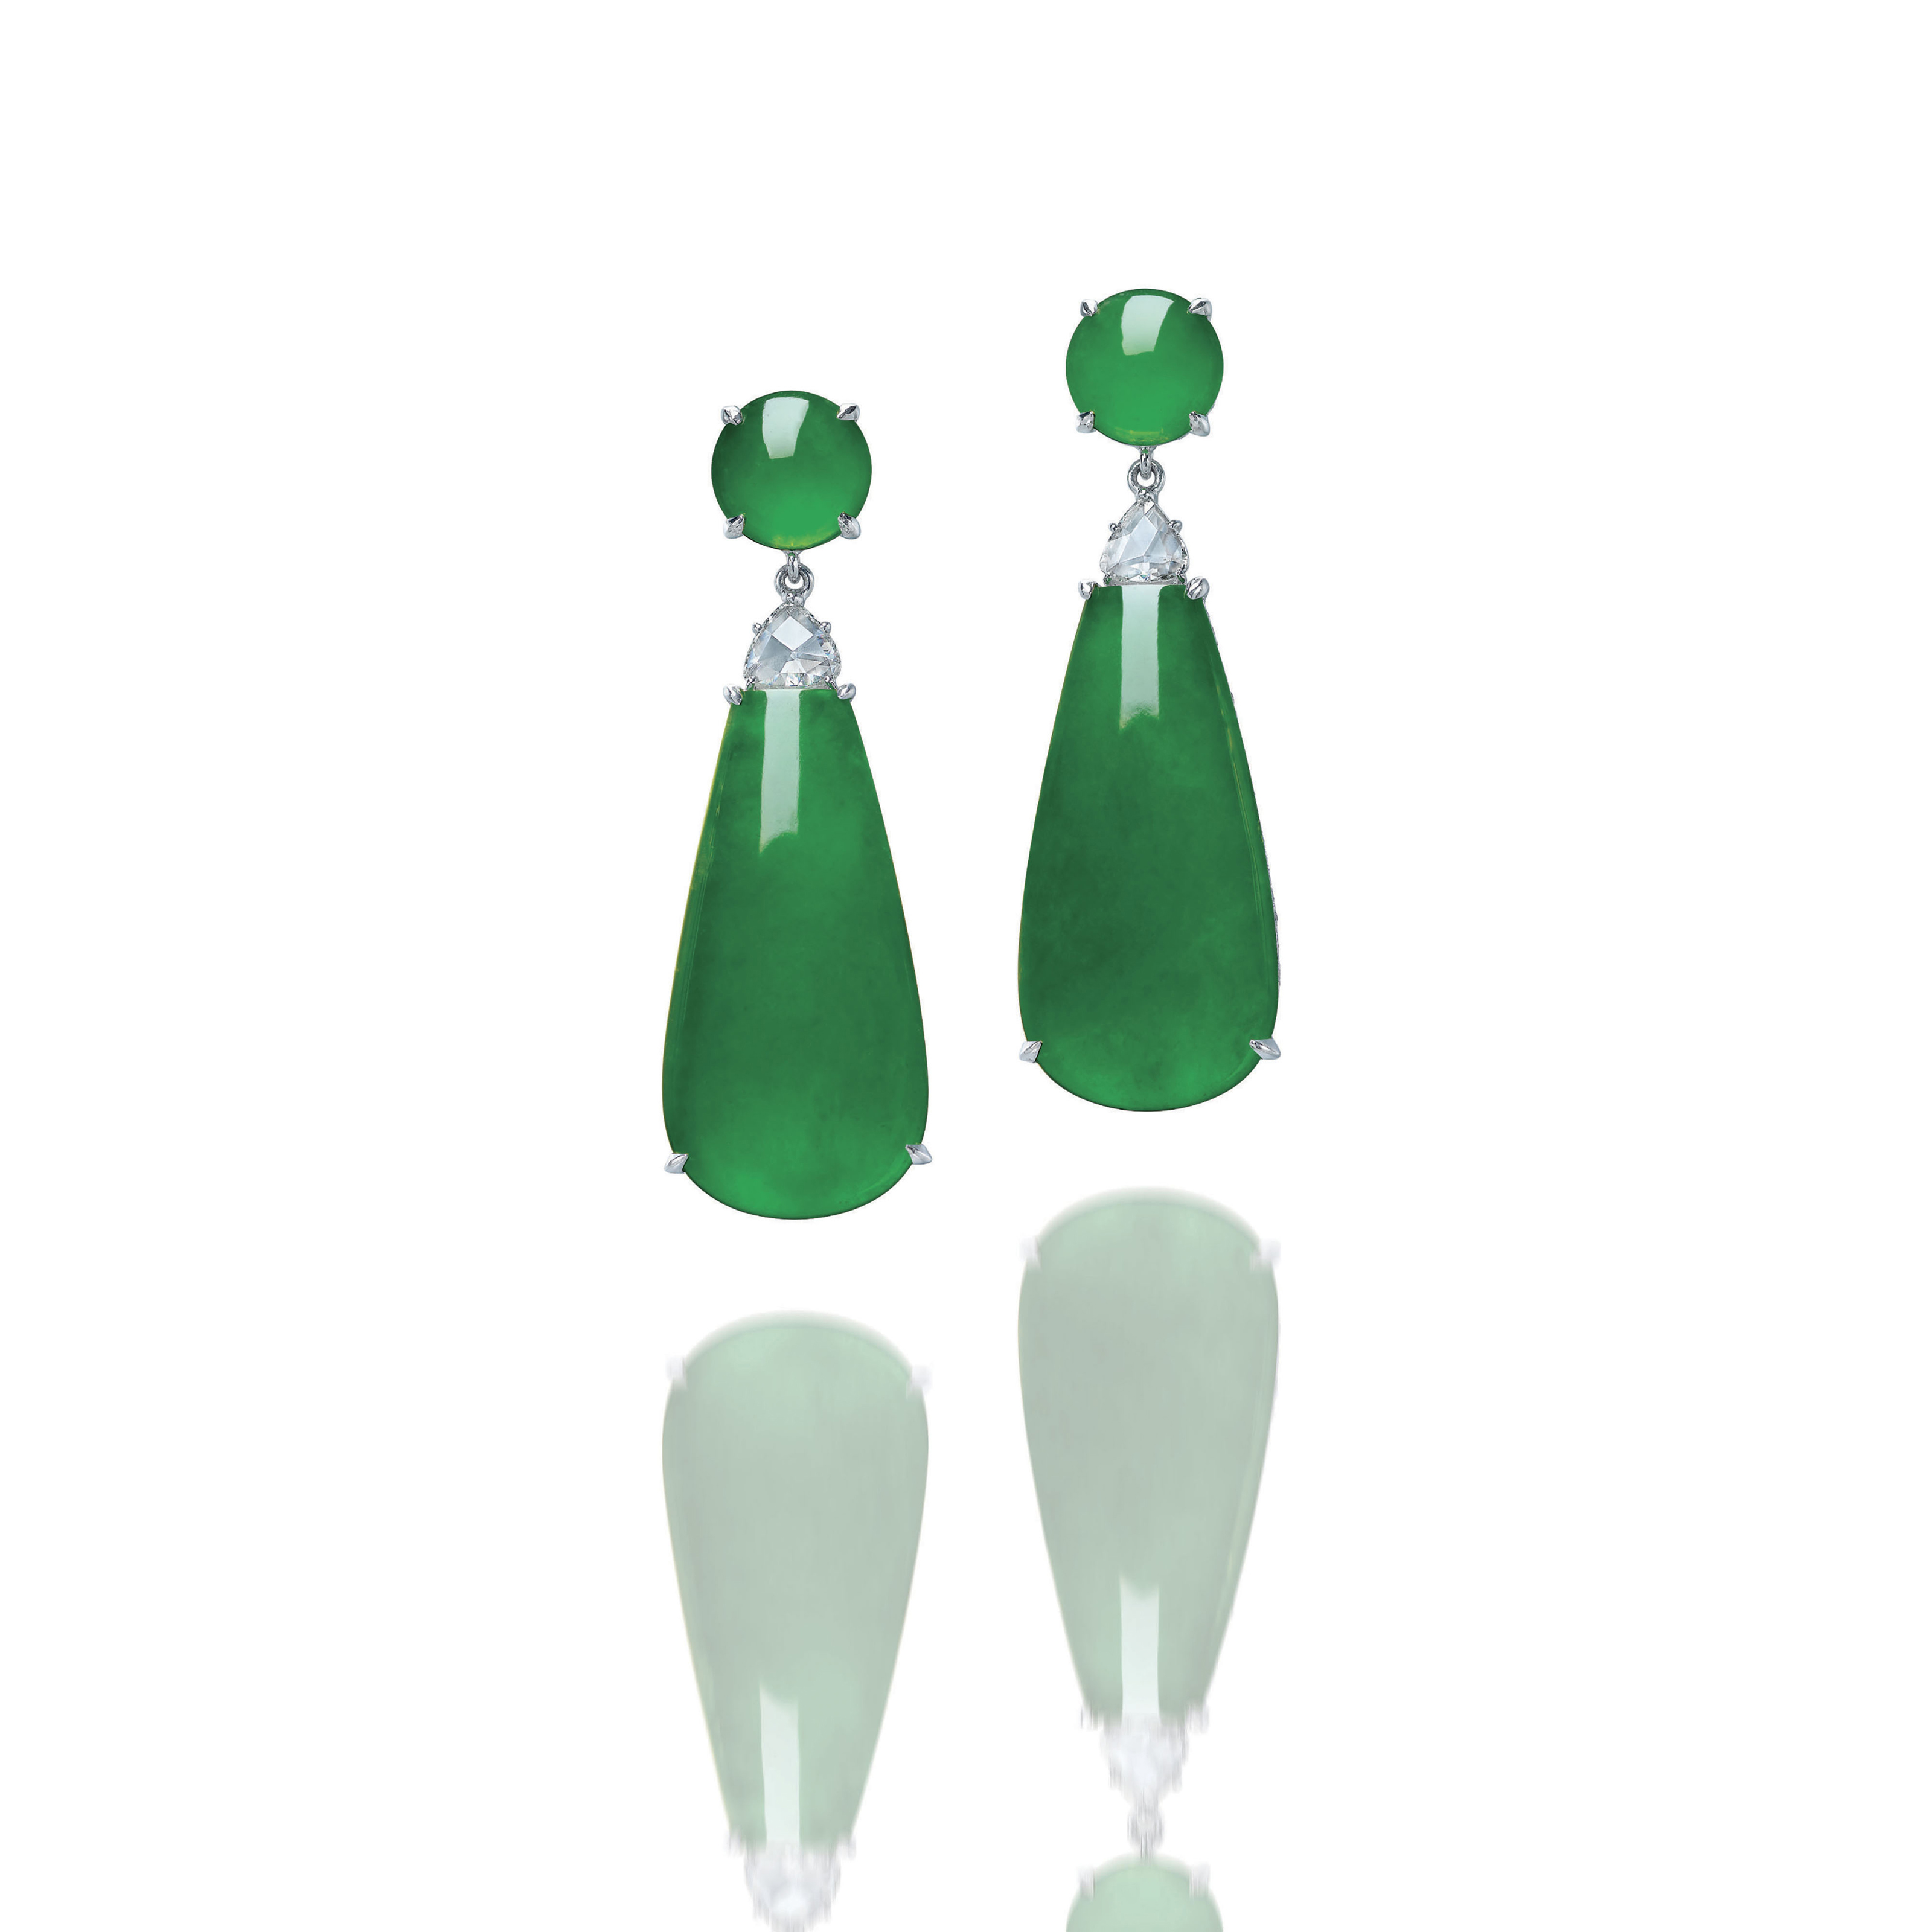 AN IMPORTANT PAIR OF JADEITE A